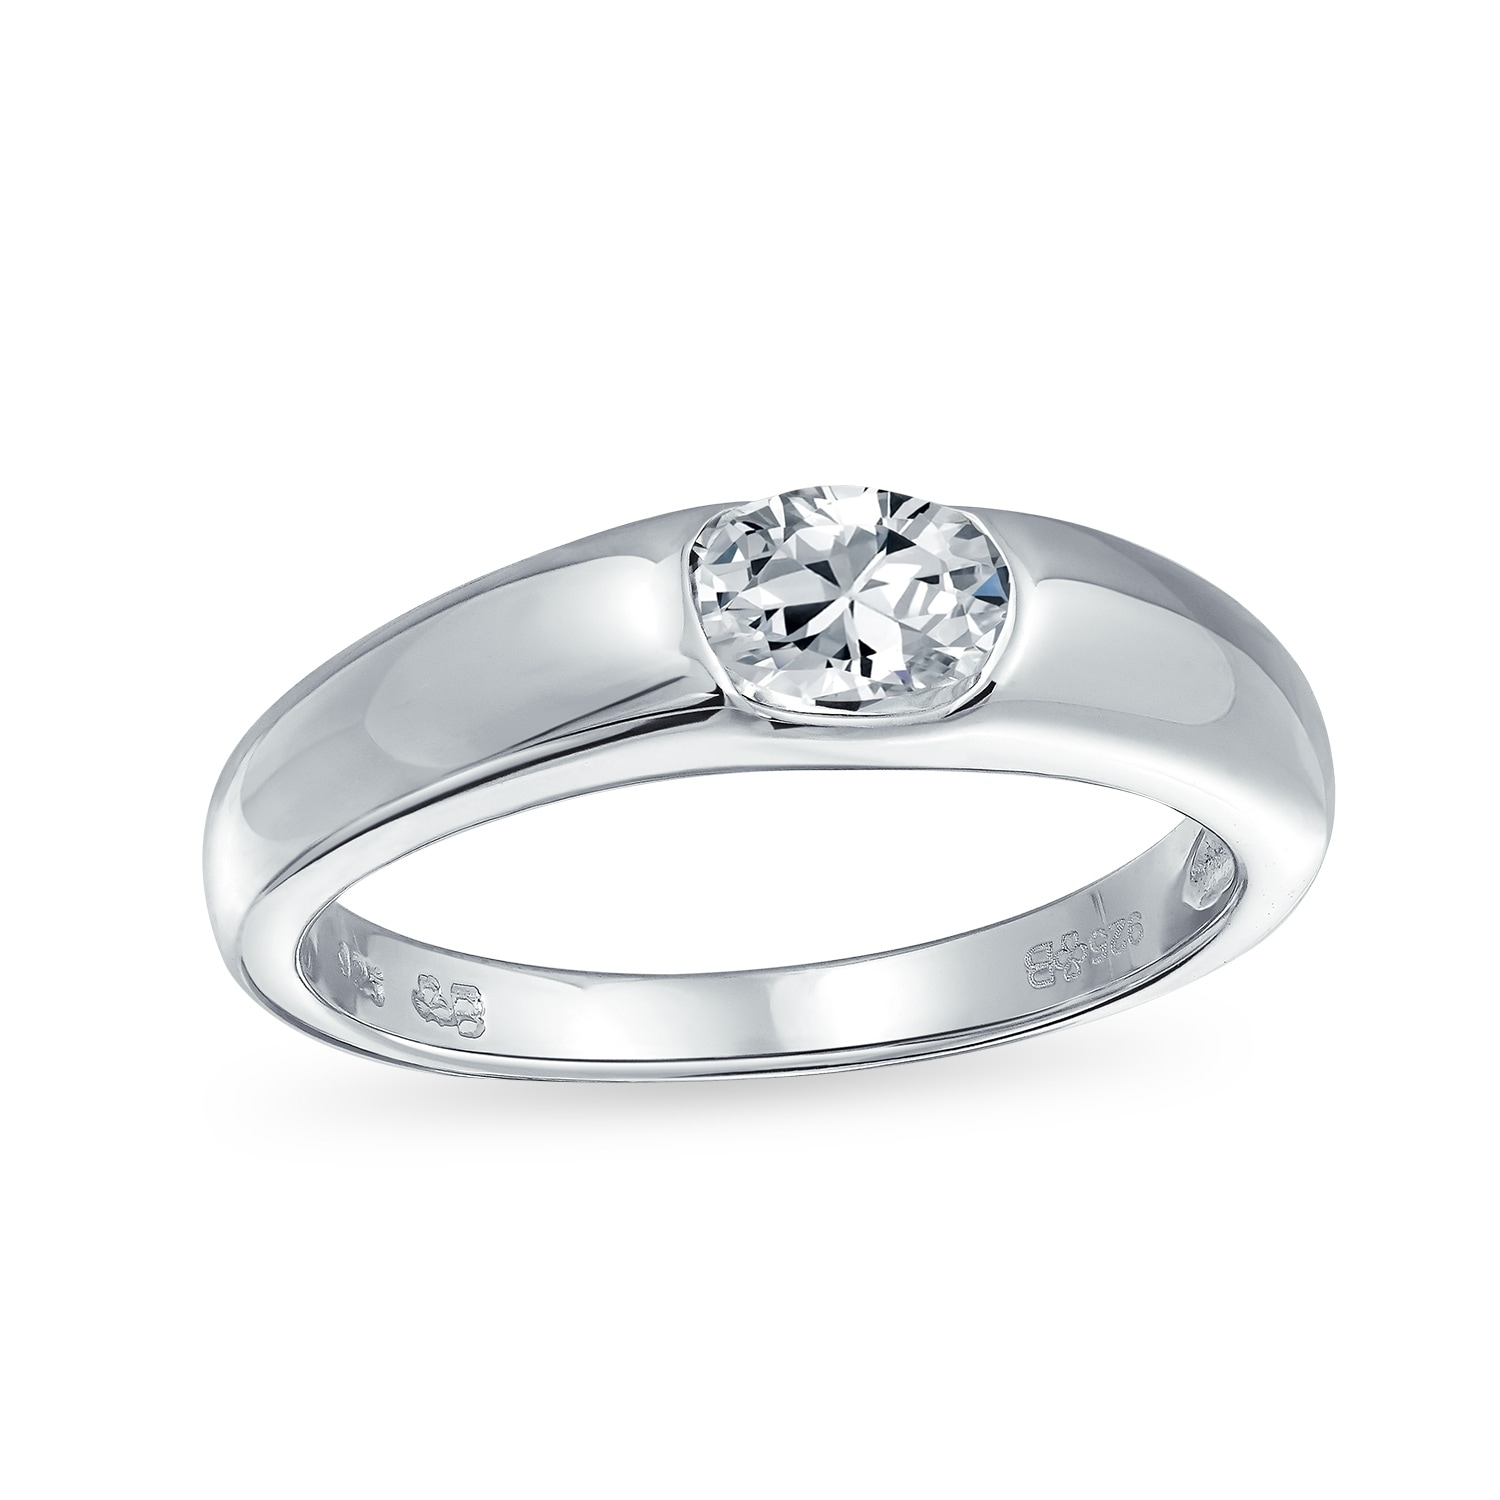 Shop 50 Ct Brilliant Solitaire Cz Band 925 Sterling Silver Engagement Ring Overstock 17984339